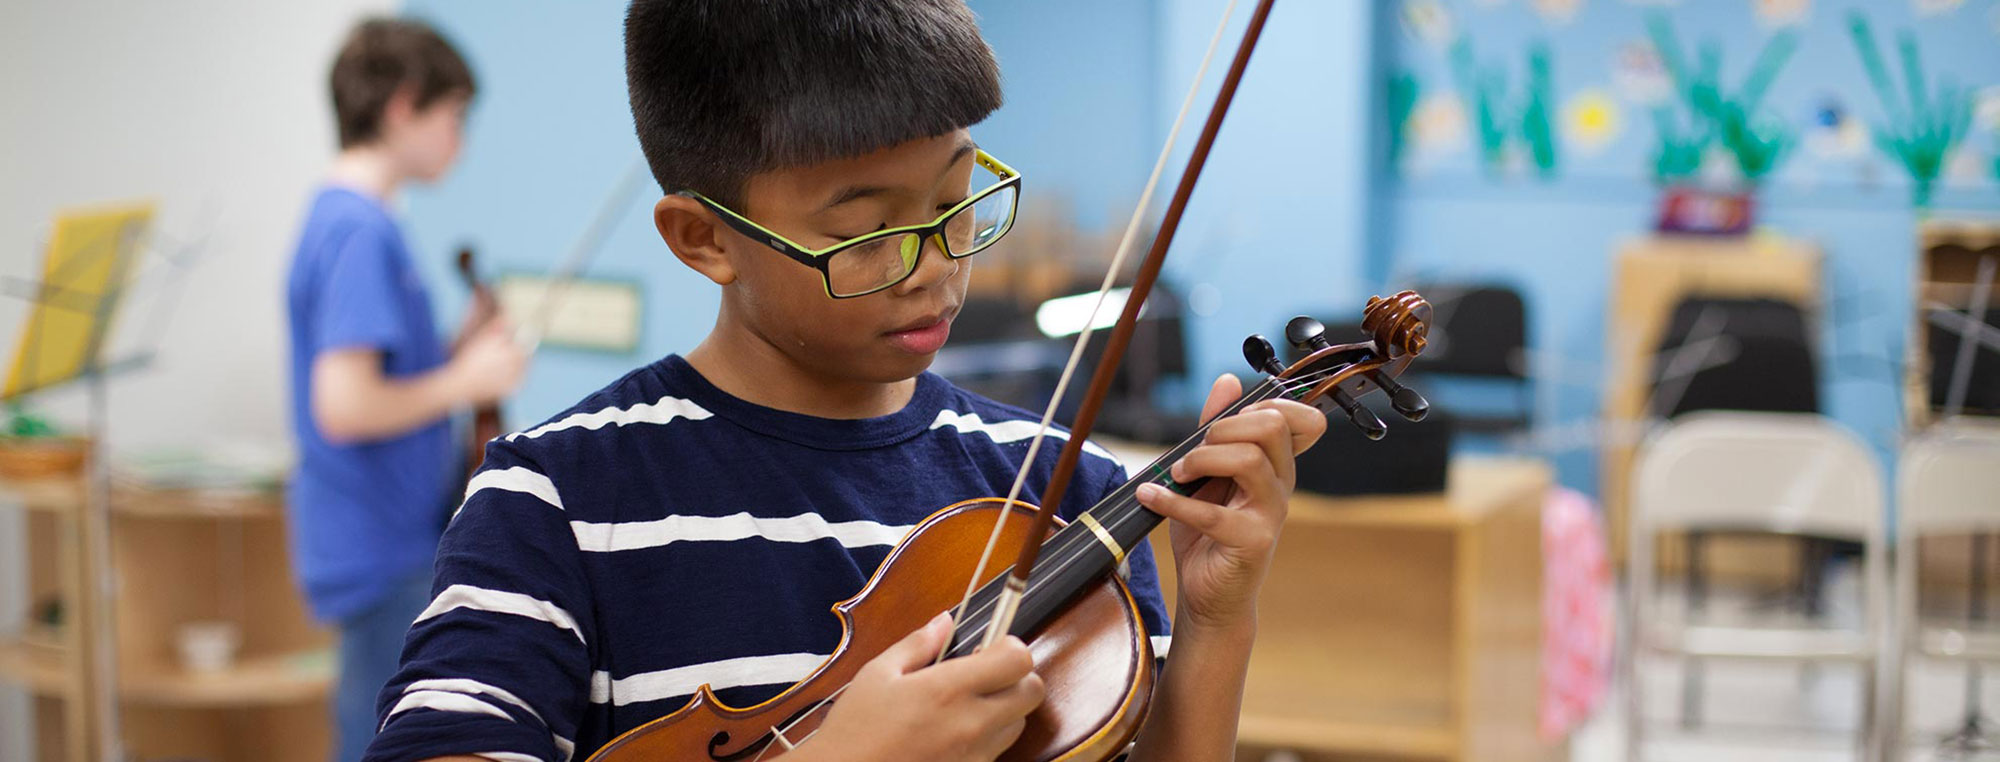 Child Strumming Violin